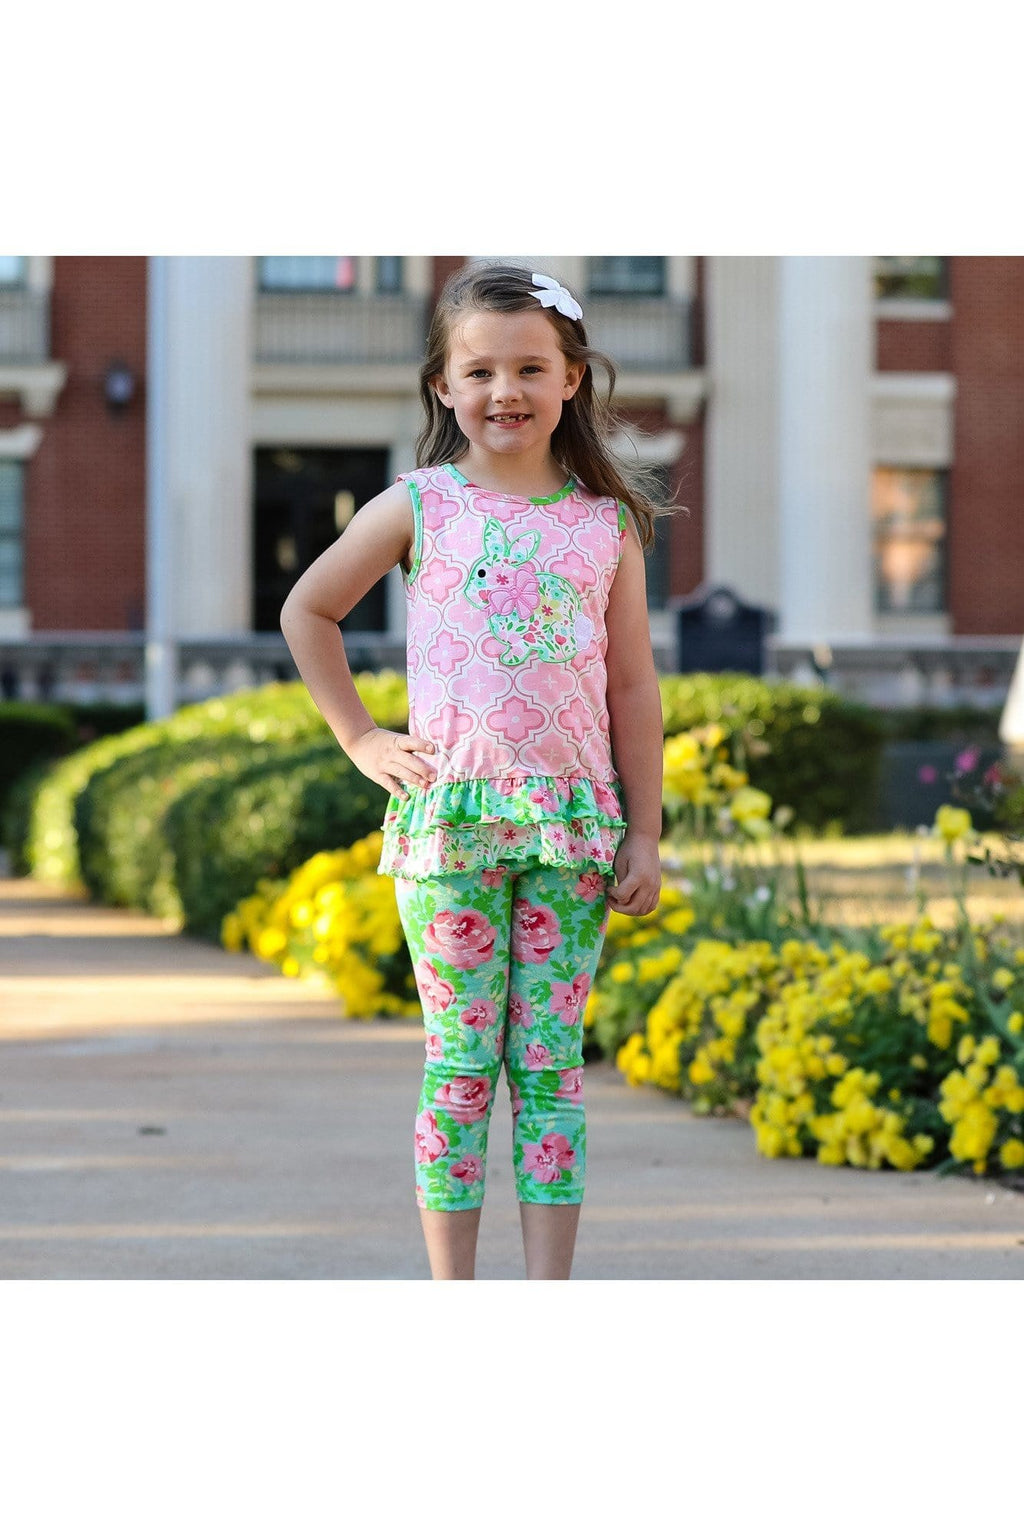 AnnLoren Little Toddler Big Girls' Easter Bunny Floral Tunic Leggings Boutique Clothing Set Sizes 2/3T - 9/10 - Himelhoch's